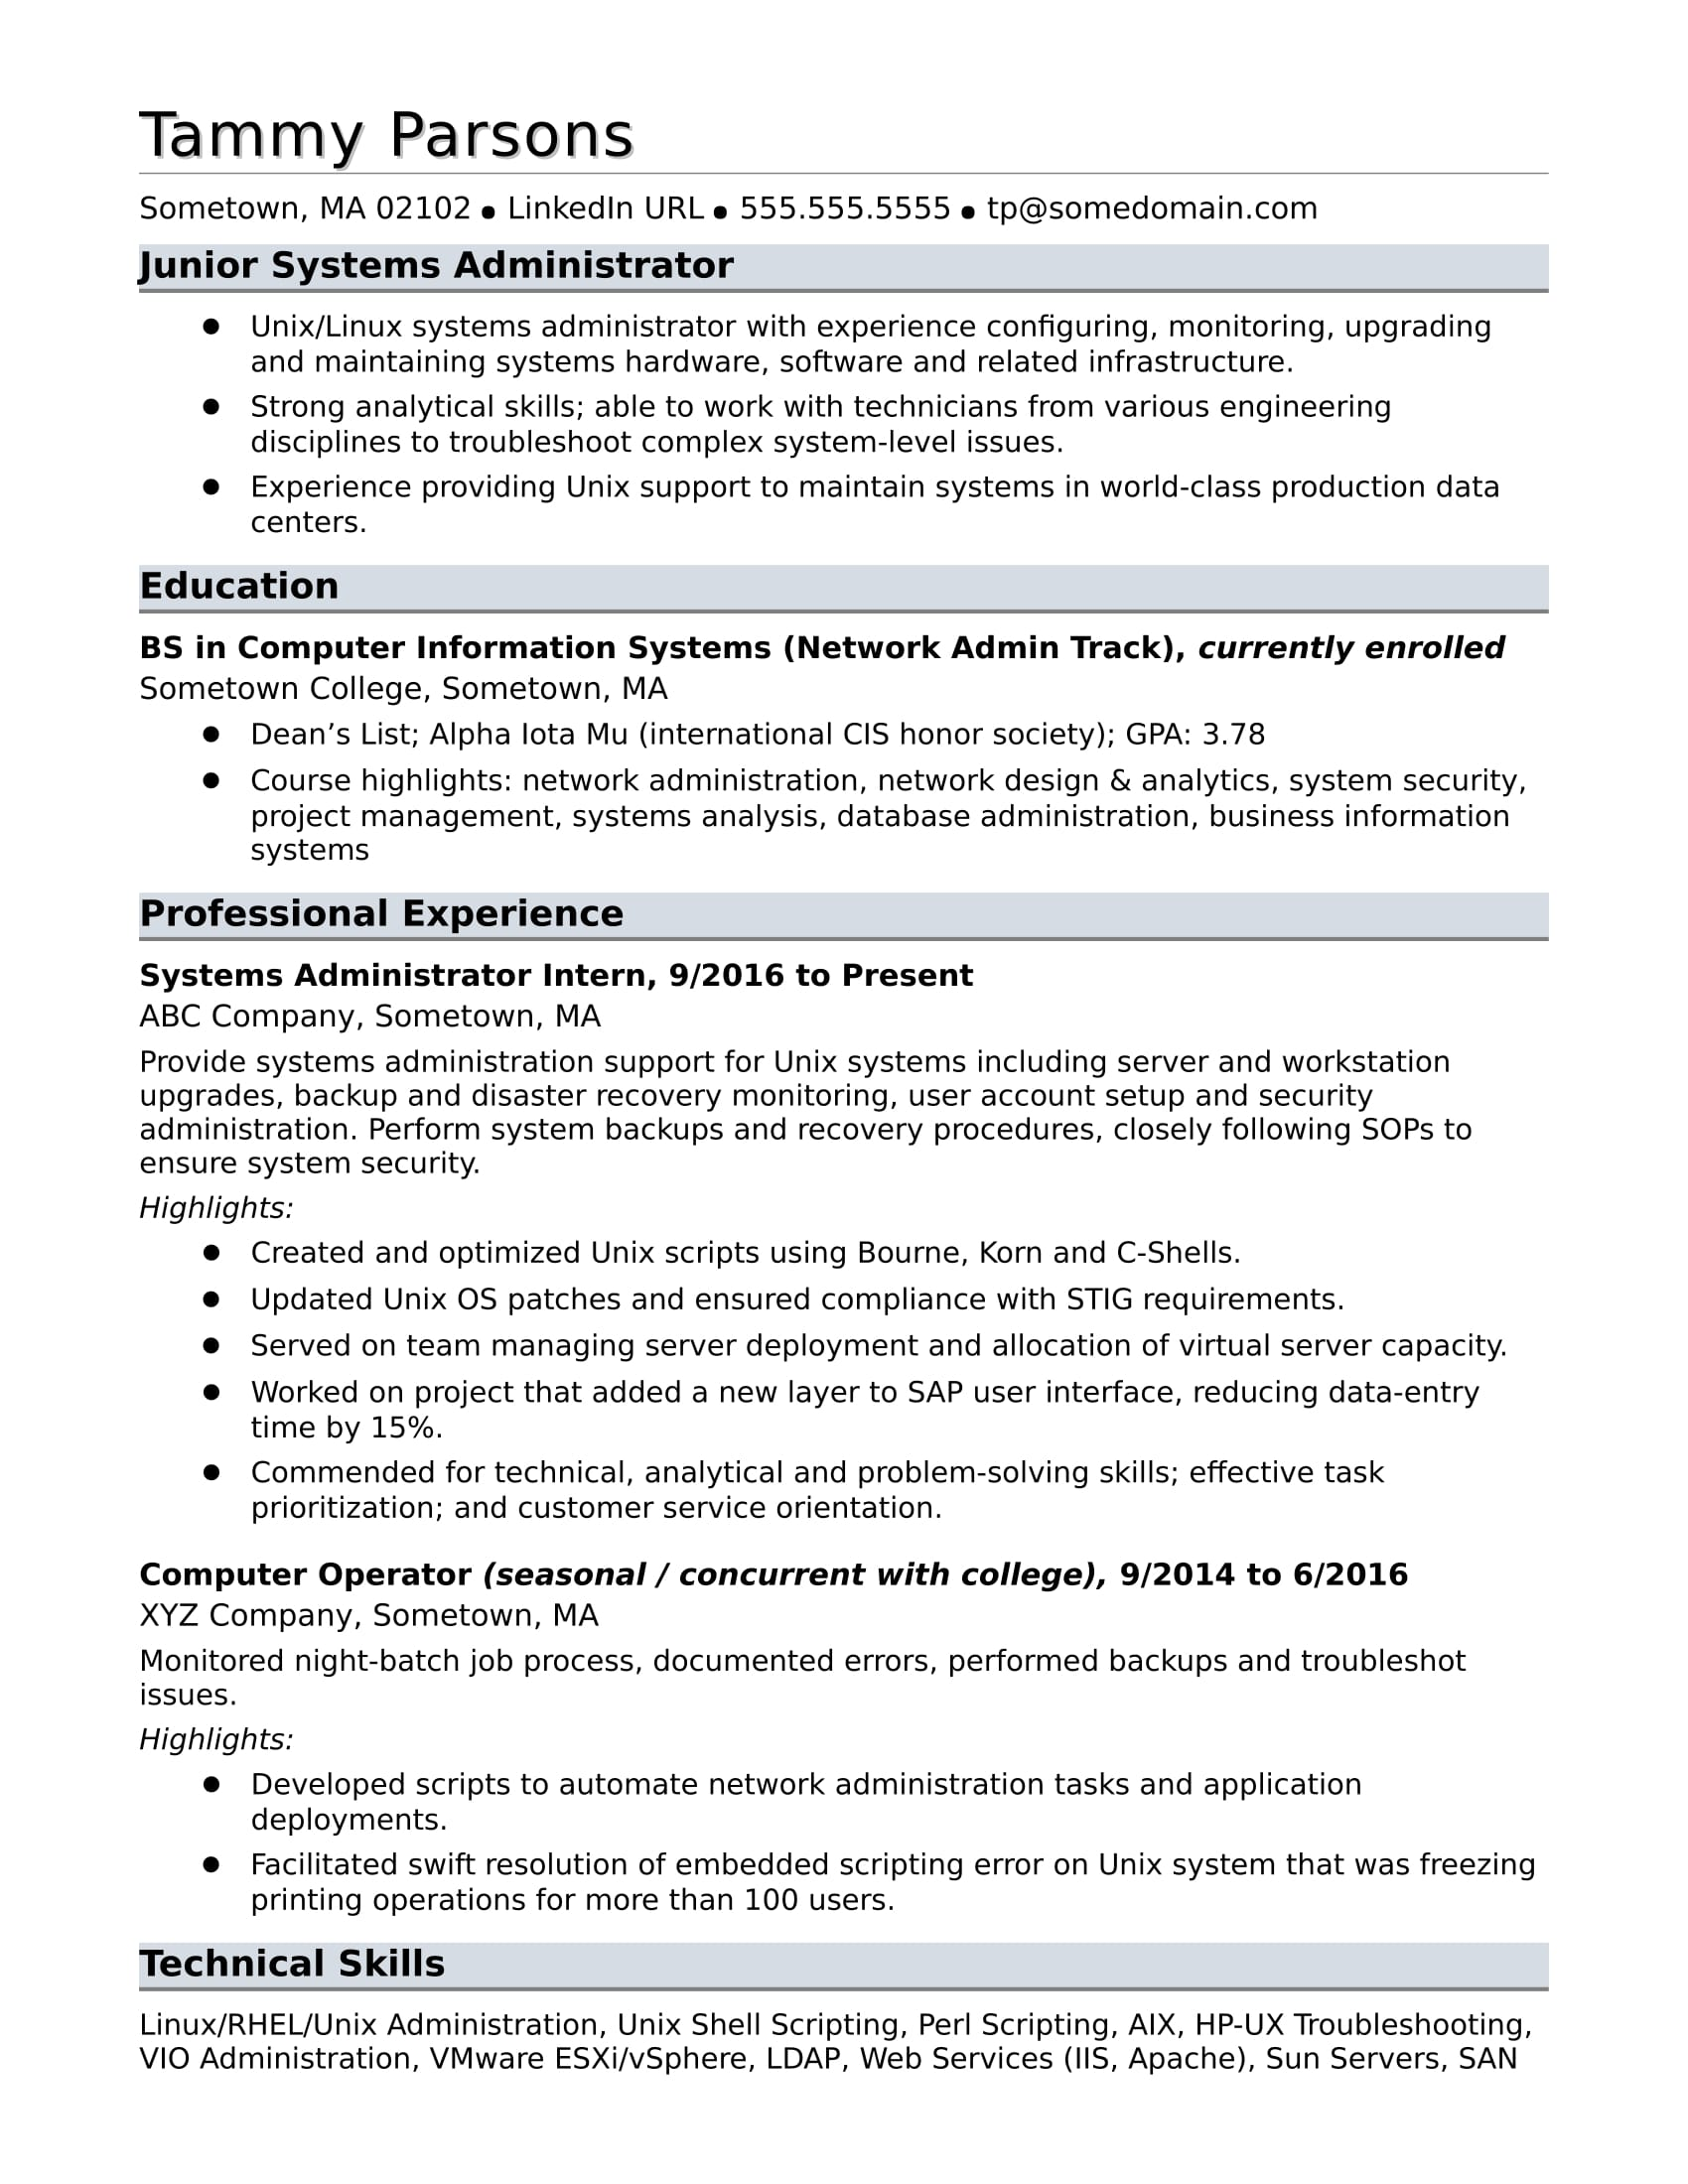 sample resume for an entry level systems administrator monster computer system building Resume Computer System Administrator Resume